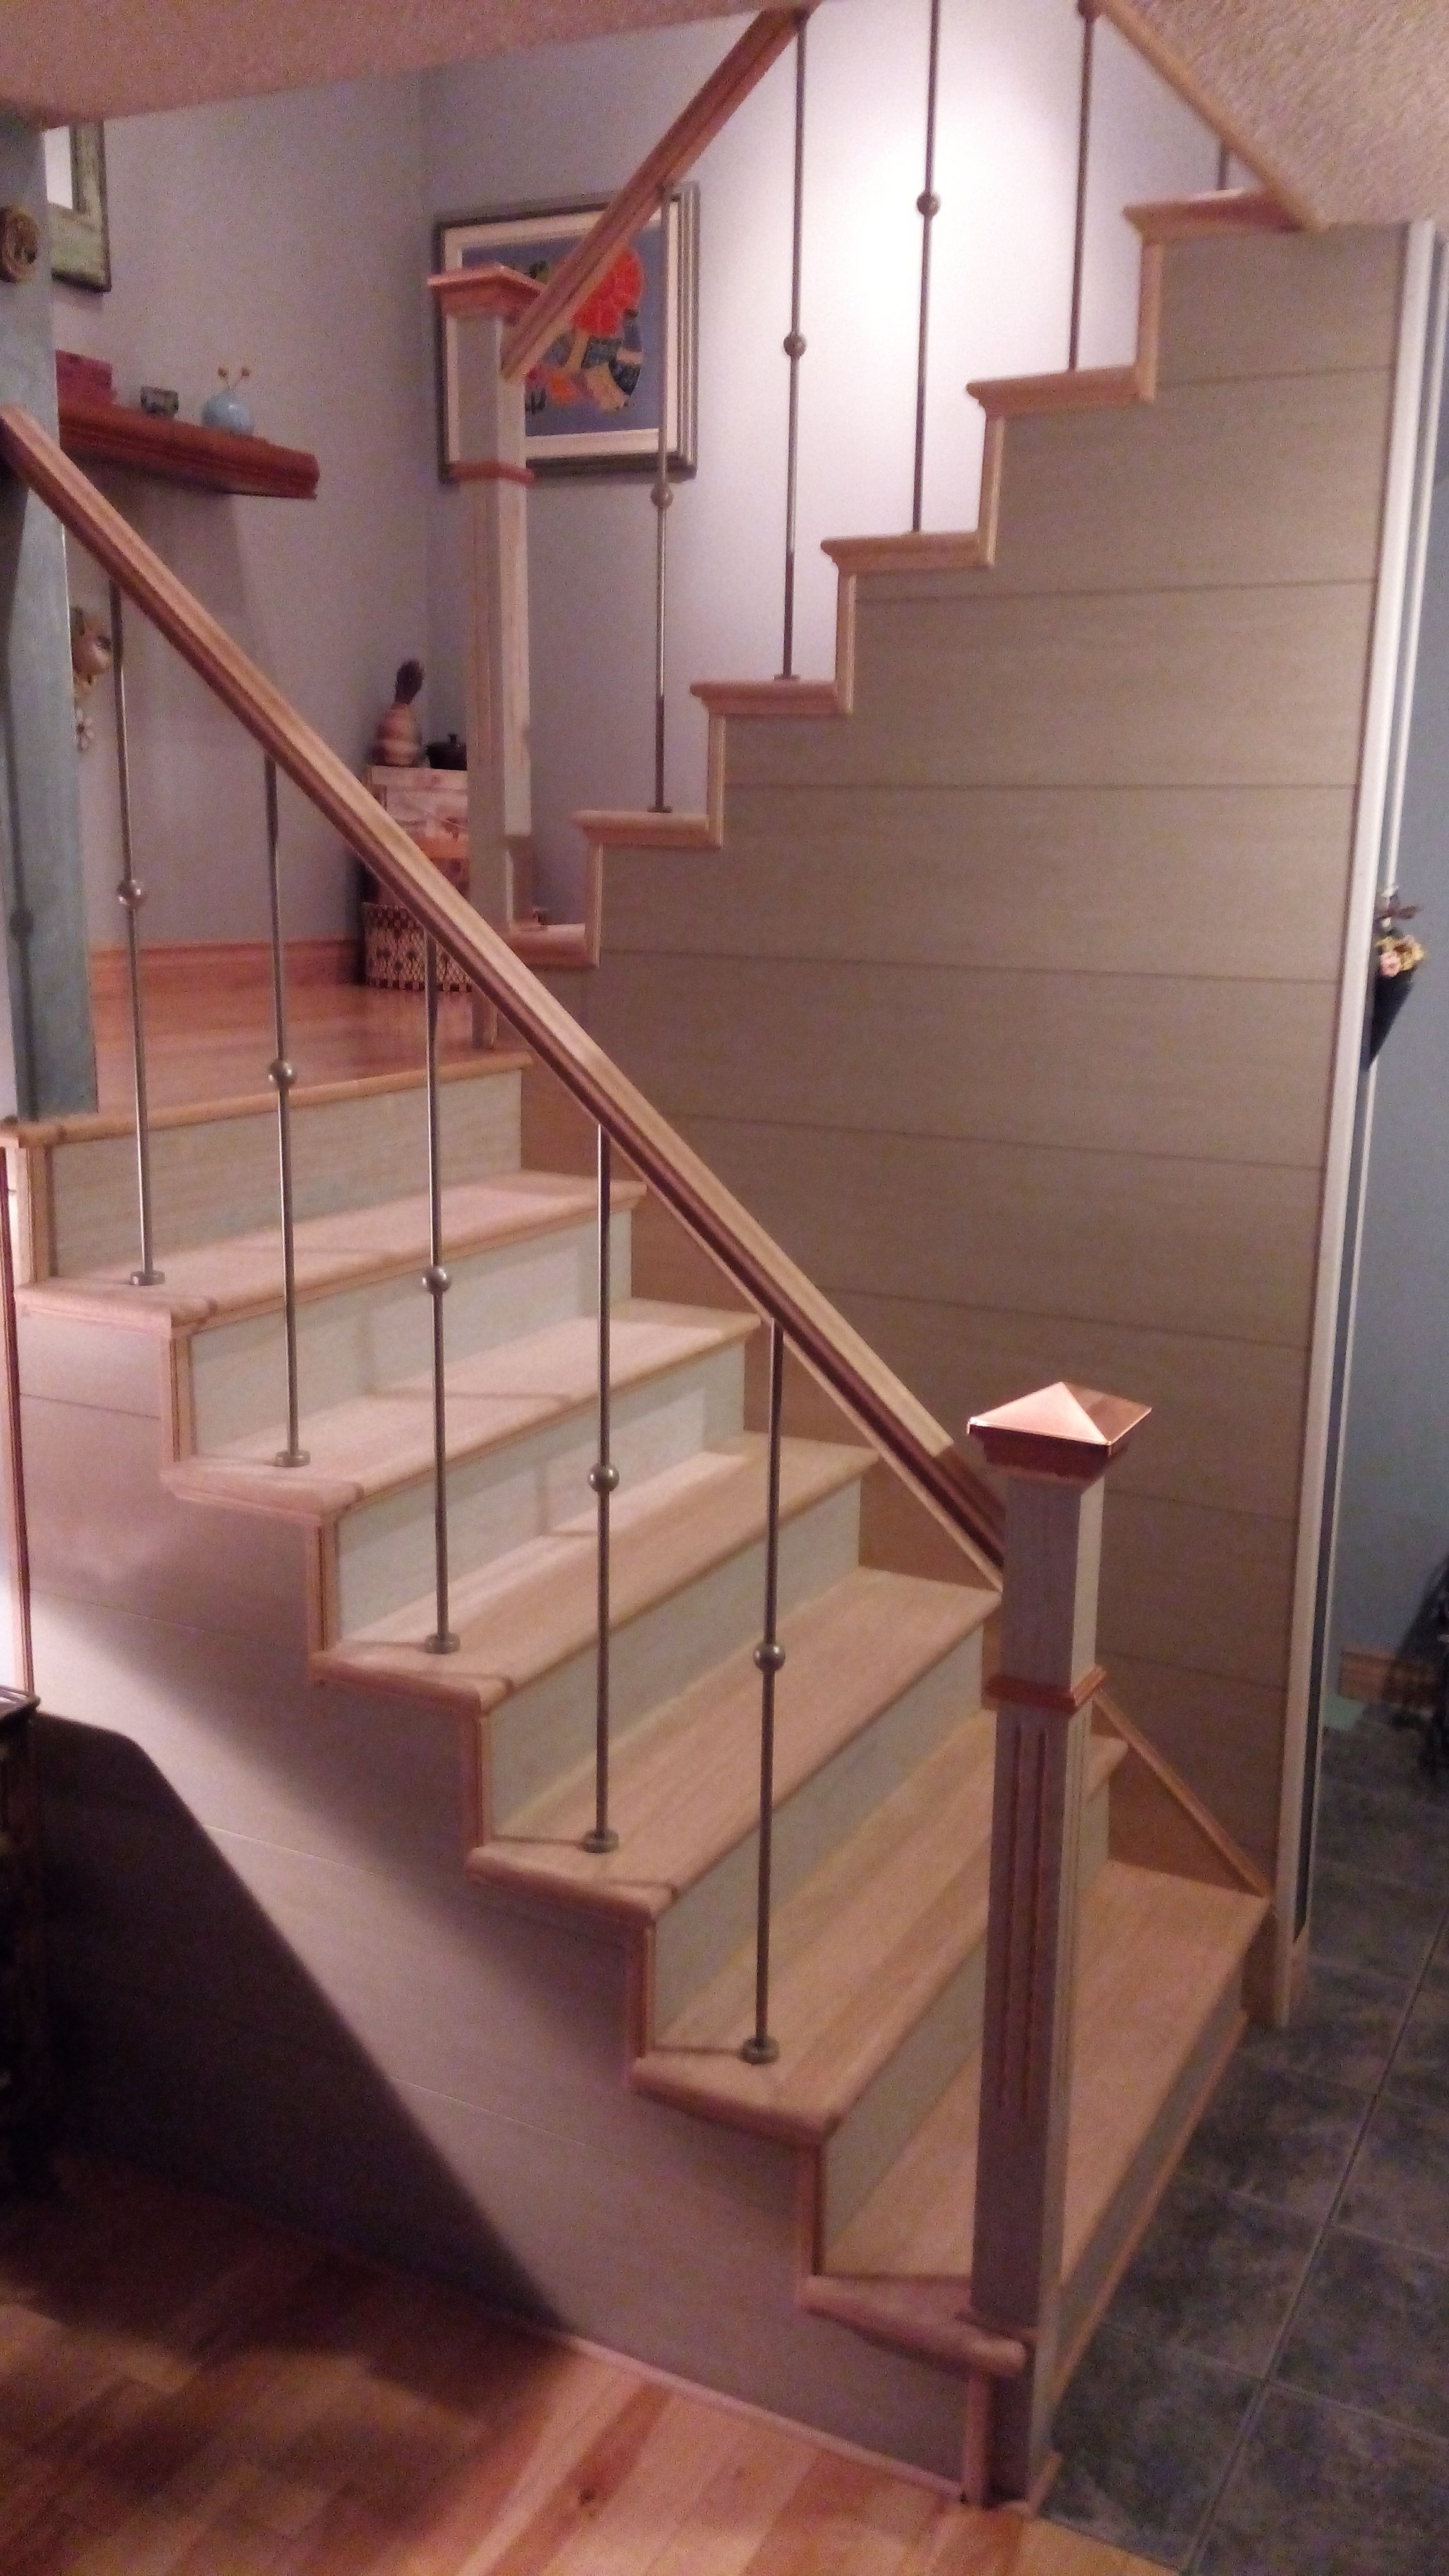 Etonnant After Renovation Oak Stairs With Silver Nickel Spindles And A Recycled  Feature Wall Product, Called